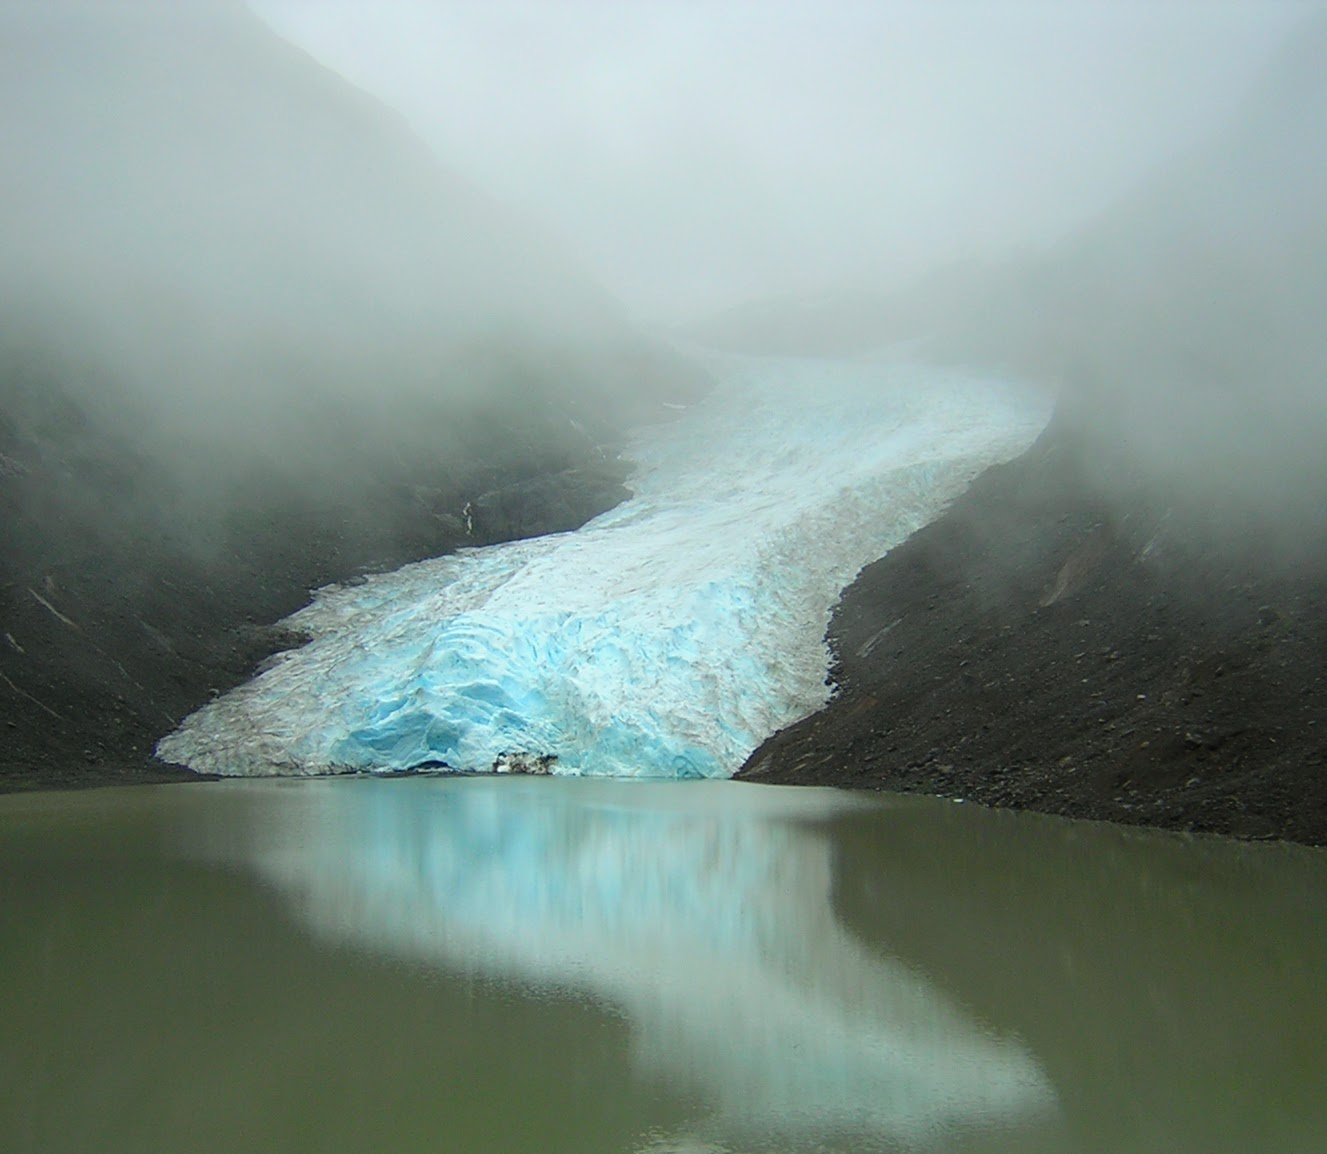 The toe of a glacier at the edge of a lake. The glacier is between two sides of a rocky hillside. It's a foggy day